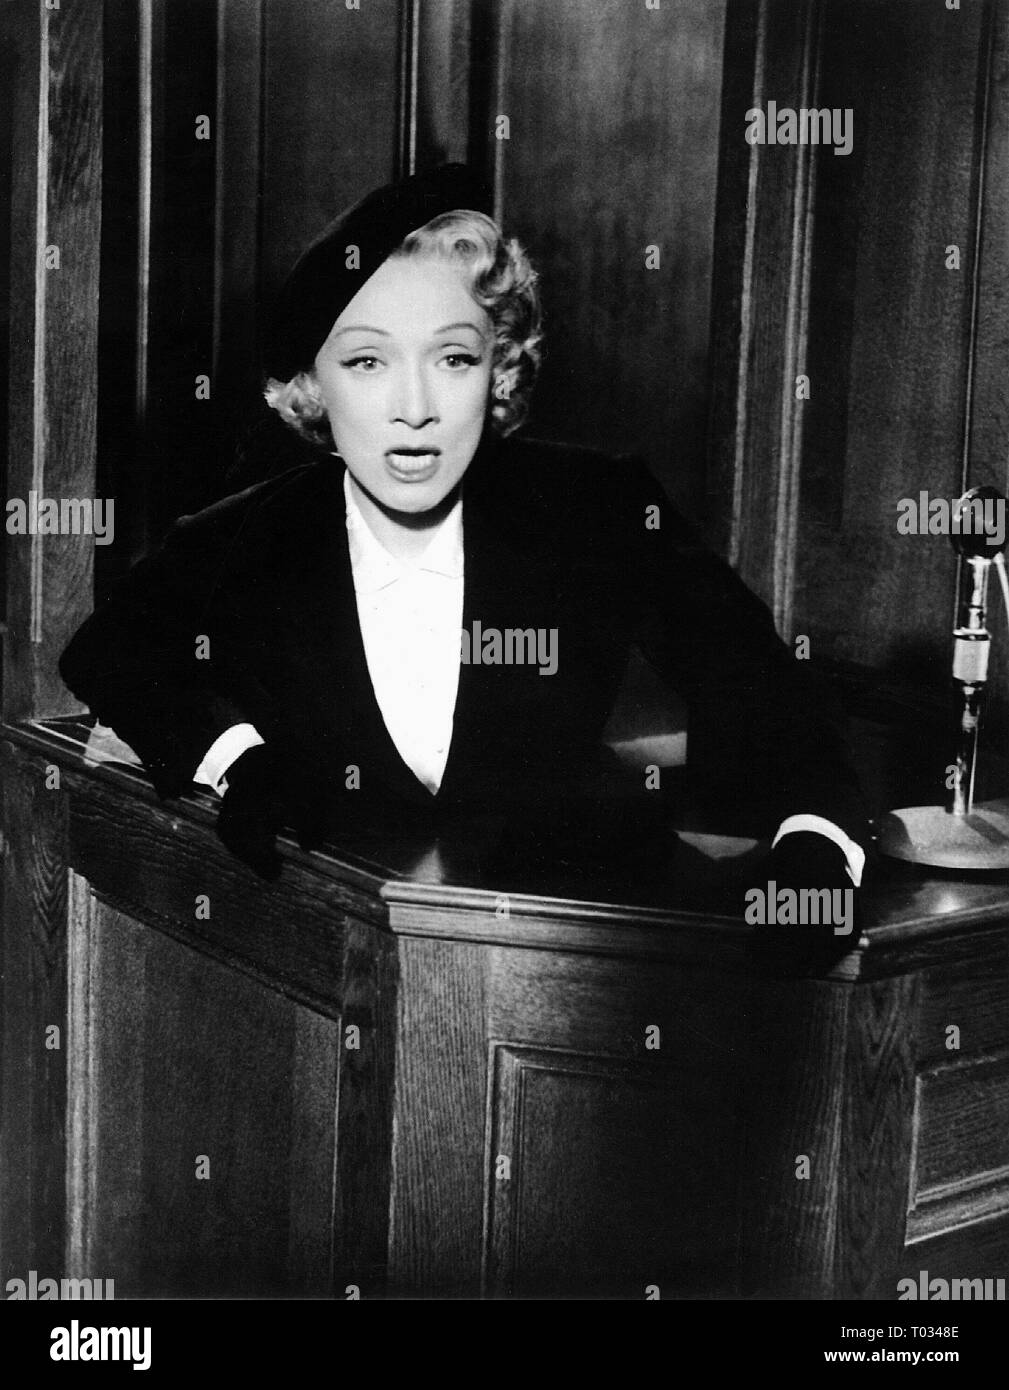 MARLENE DIETRICH, WITNESS FOR THE PROSECUTION, 1957 - Stock Image